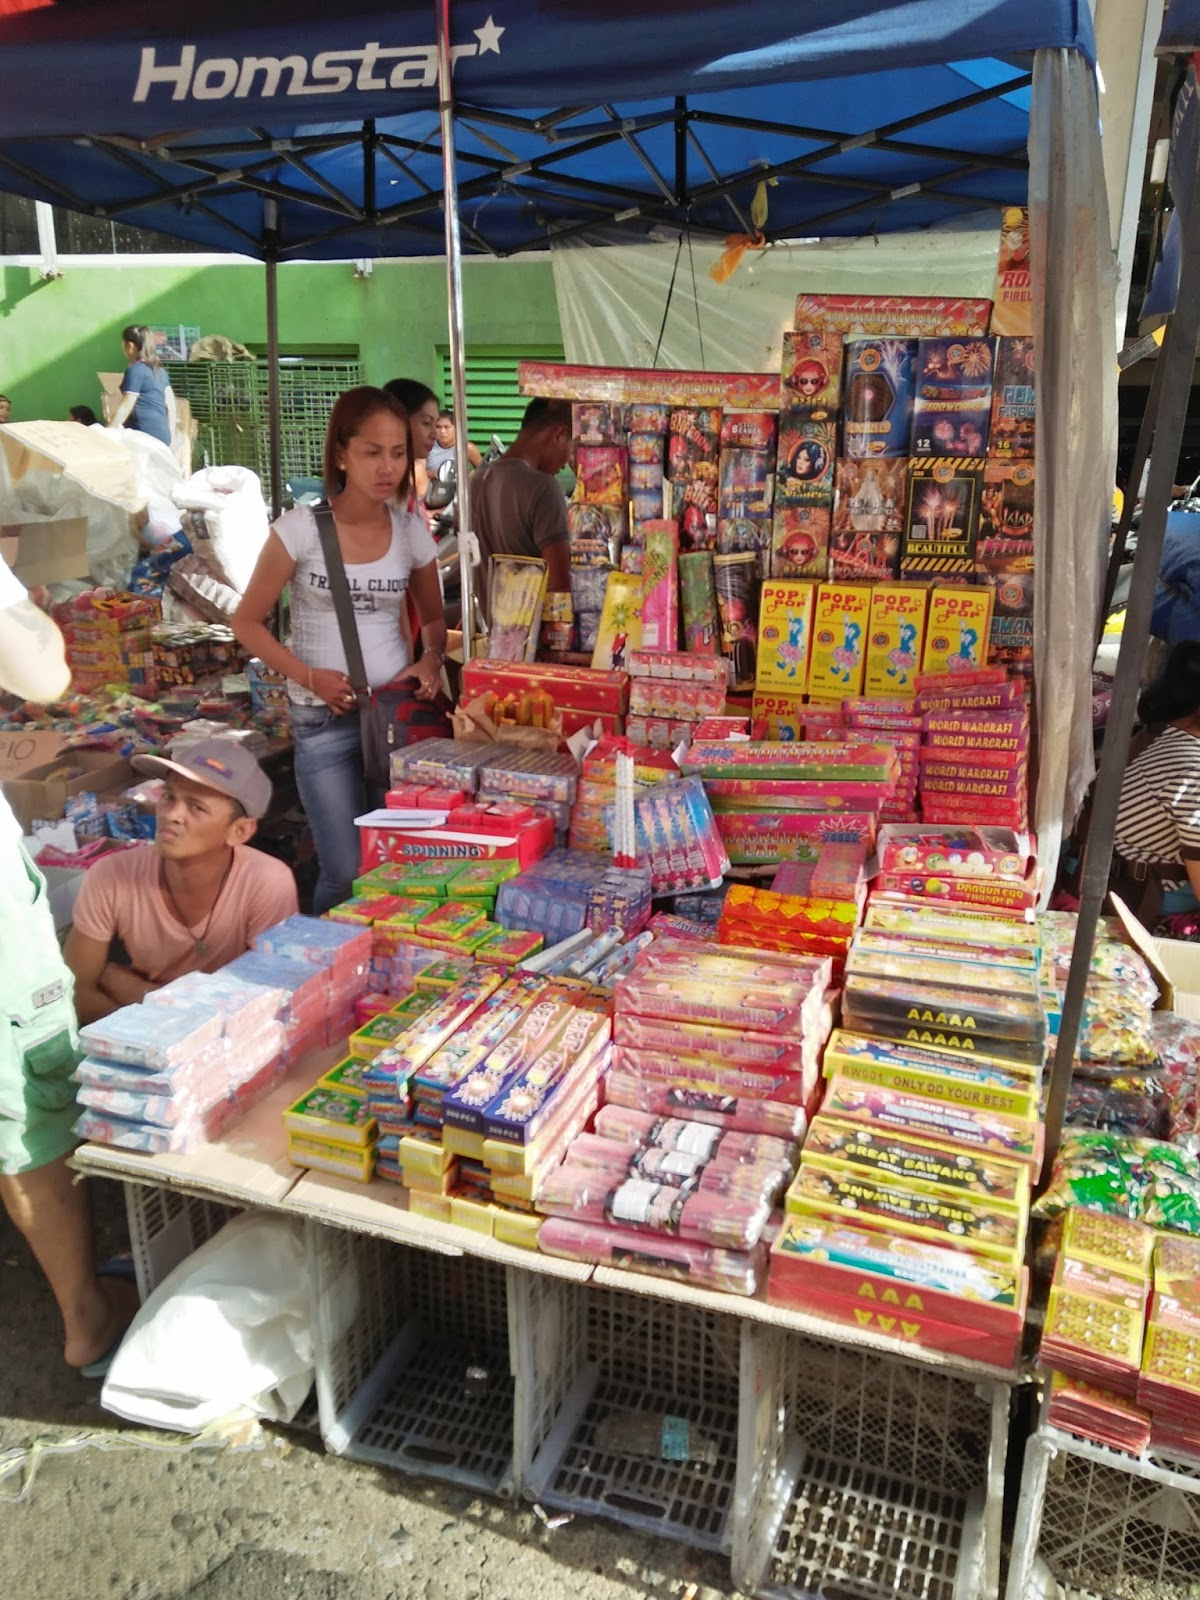 2da1c27c76f A street vendor sells firecrackers and pyrotechnic devices in Divisoria